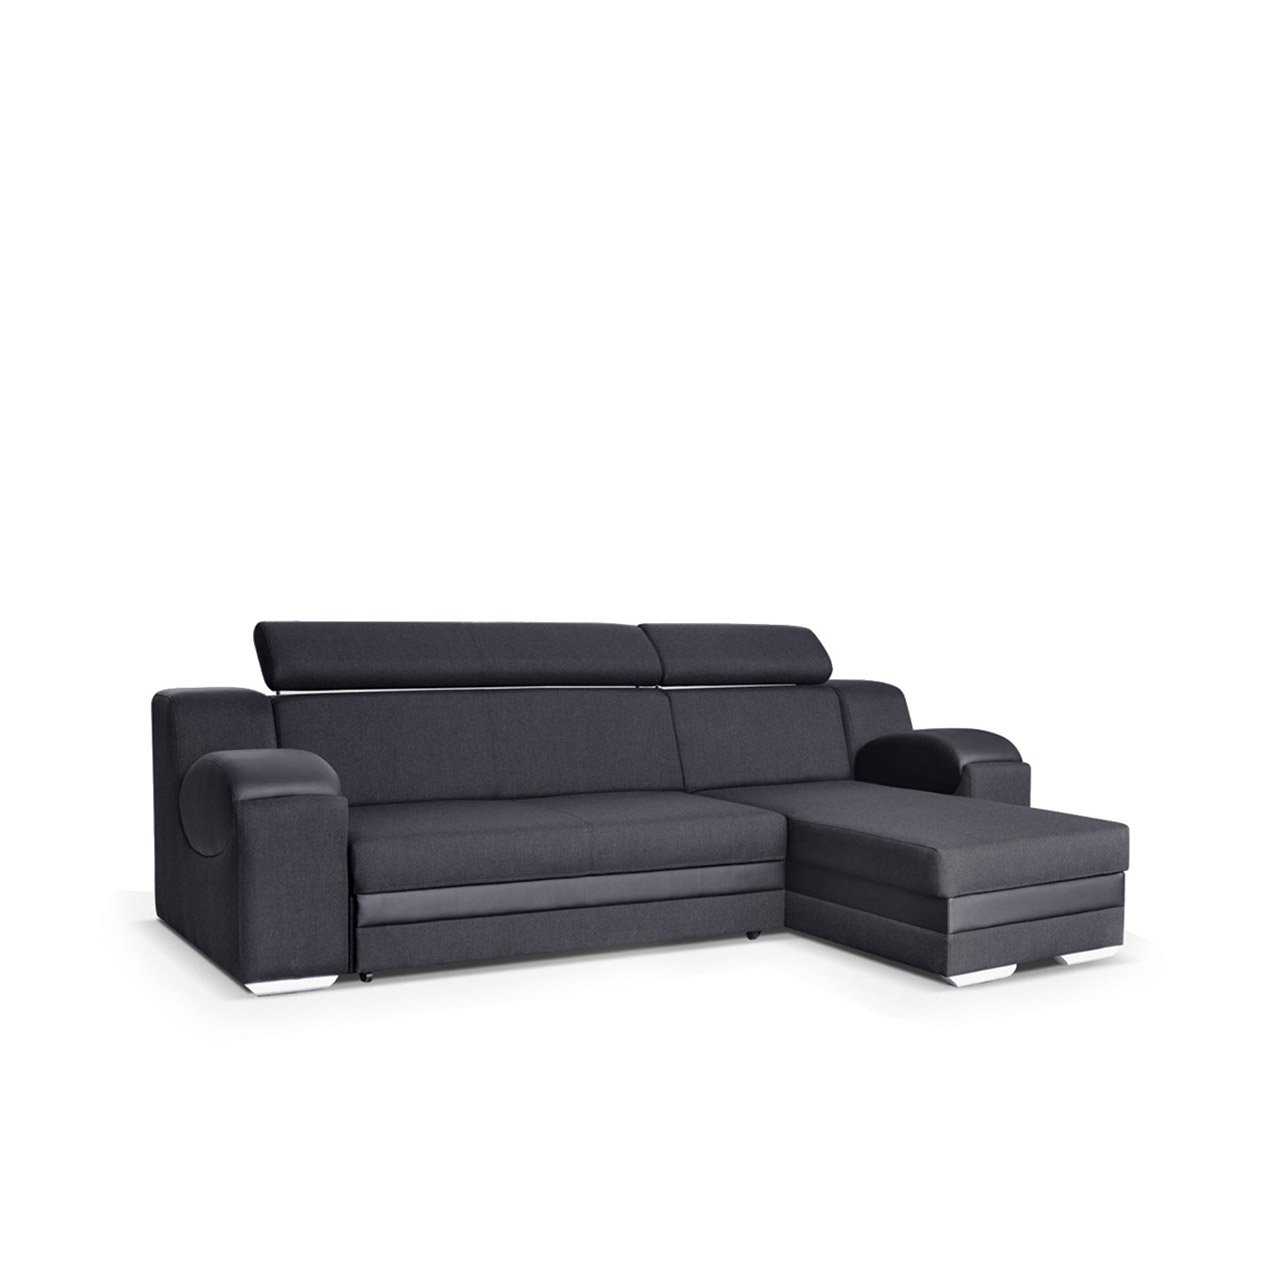 kopfsttze fr sofa beautiful modernes sofa leder pltze. Black Bedroom Furniture Sets. Home Design Ideas